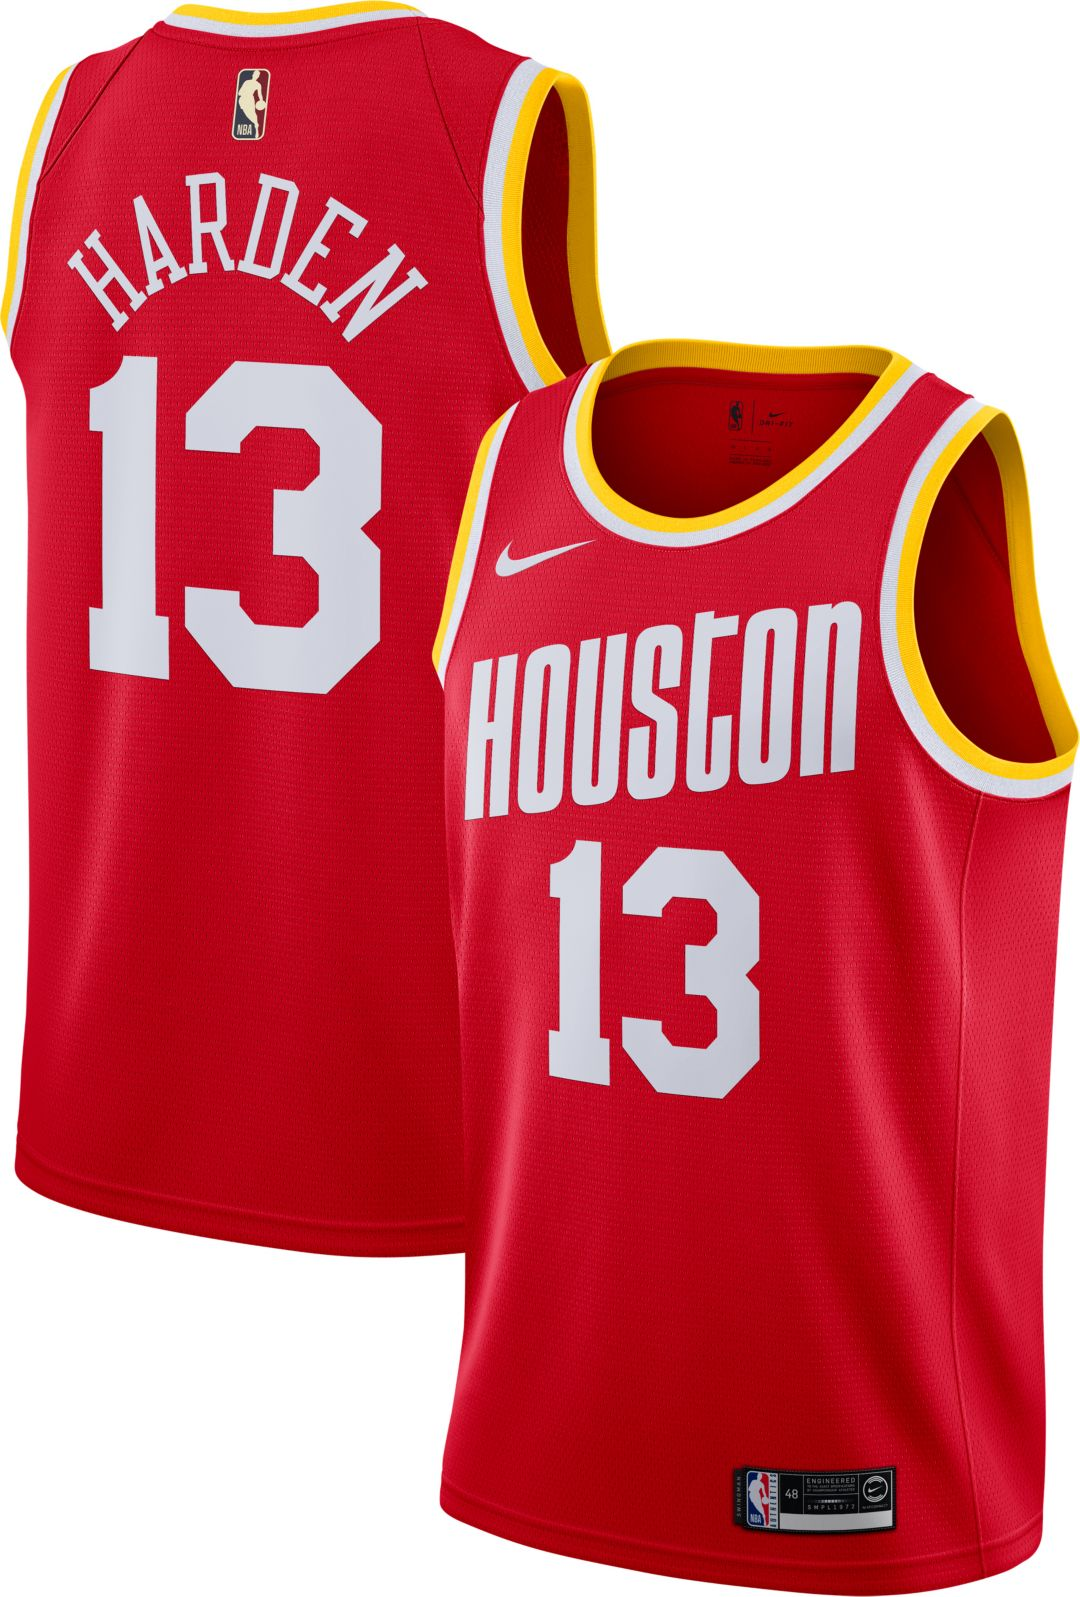 promo code 7493e 31a11 Nike Men's Houston Rockets James Harden #13 Hardwood Classic Dri-FIT  Swingman Jersey